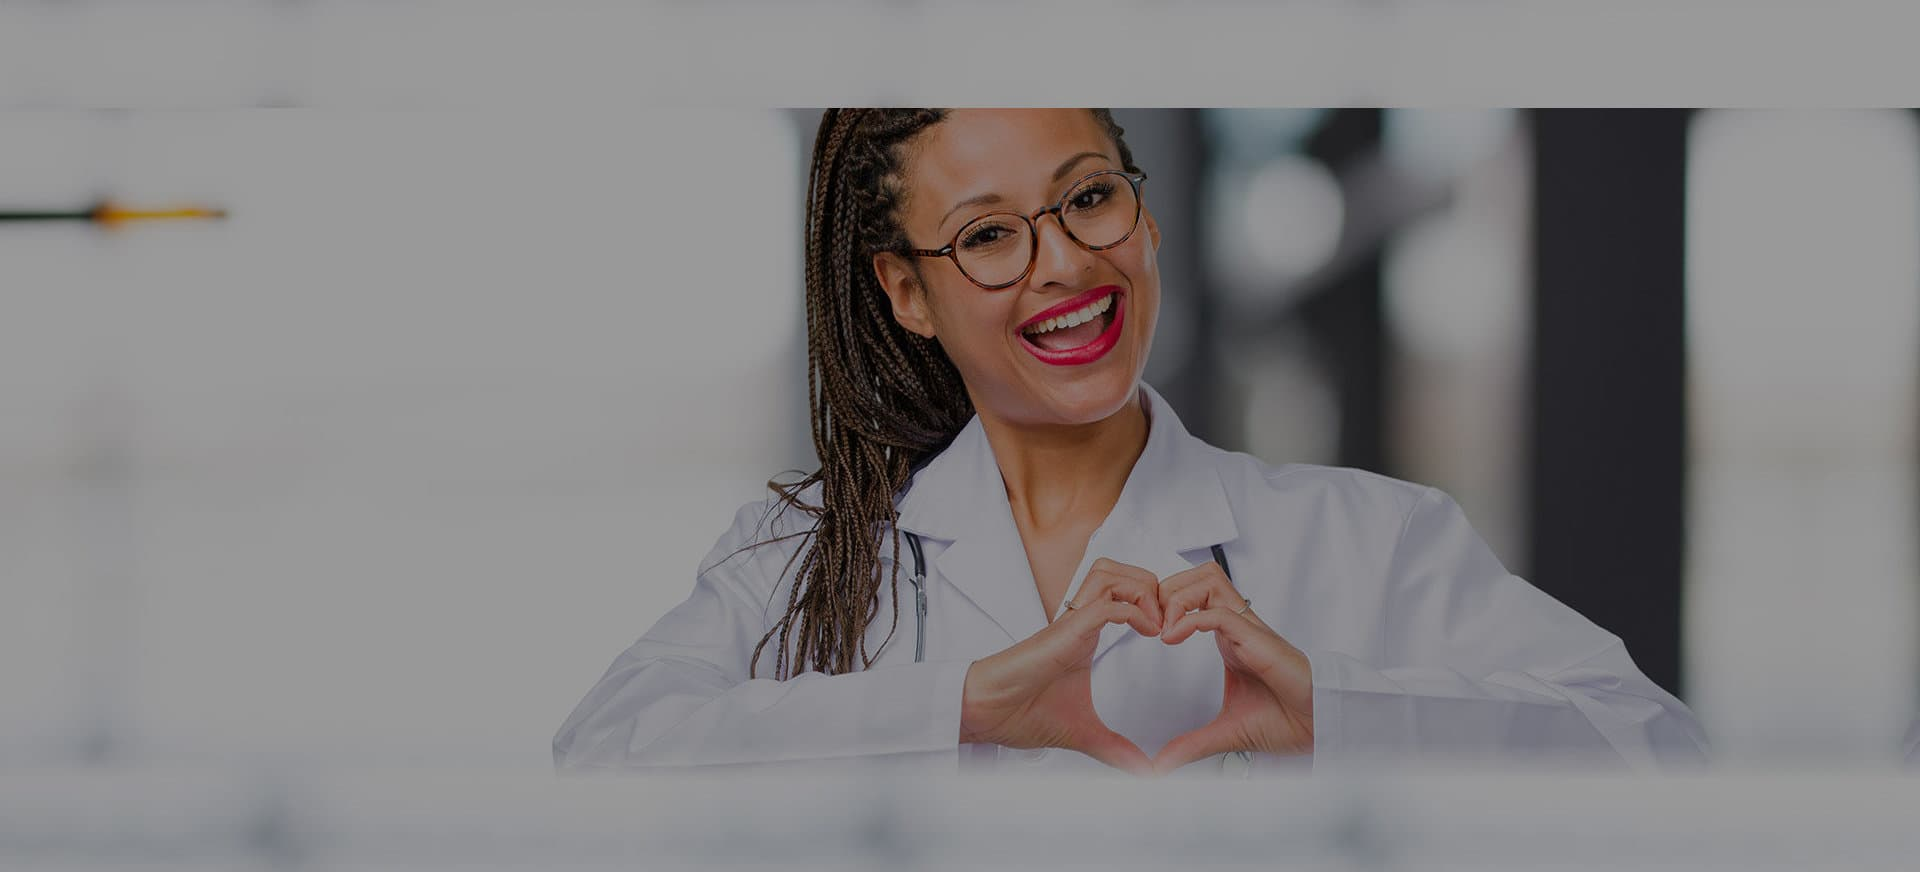 doctor with heart sign